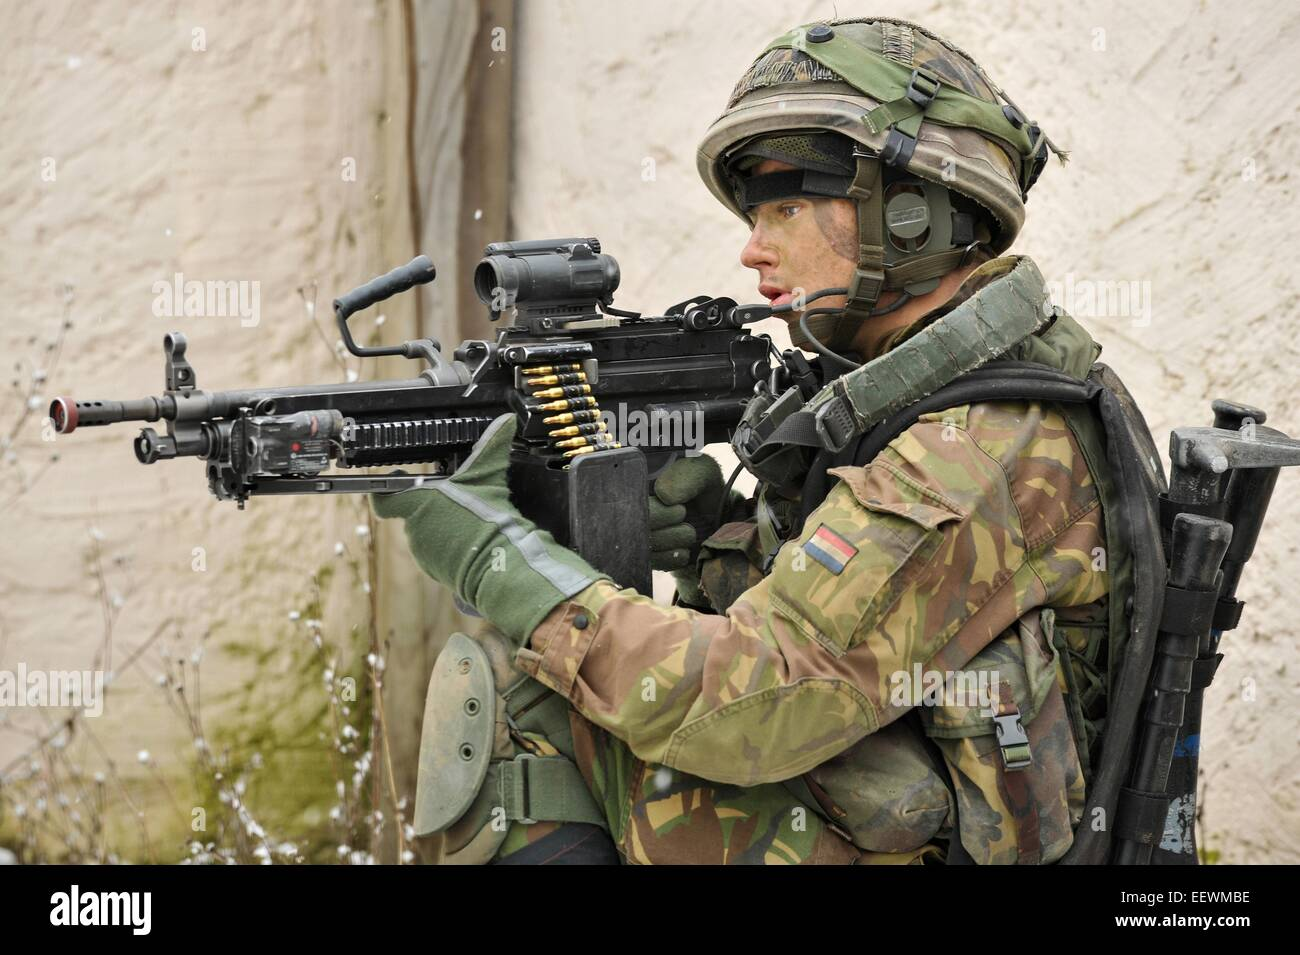 A Dutch soldier fires his machine gun during NATO exercise Allied Spirit at the U.S. Army Joint Multinational Readiness - Stock Image